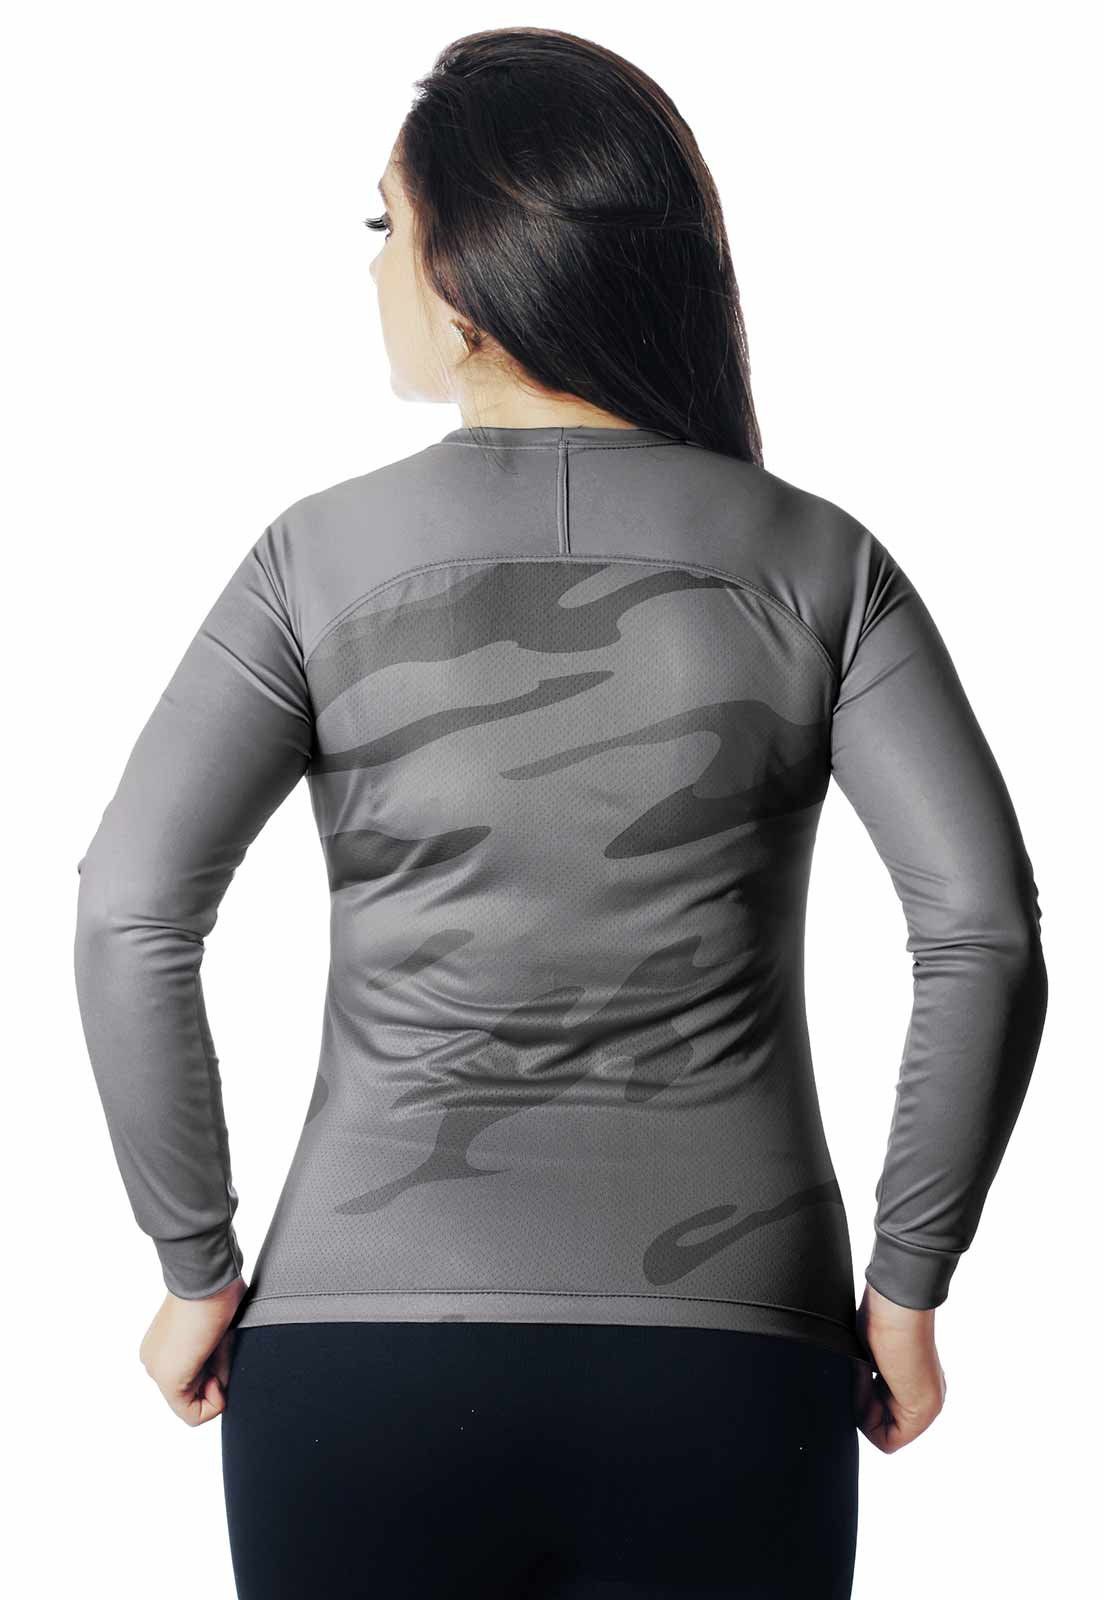 CAMISA DE PESCA CASUAL LAZER PROTEÇÃO UV CAMUFLADA 11 REAL HUNTER FEMININA  - REAL HUNTER OUTDOORS